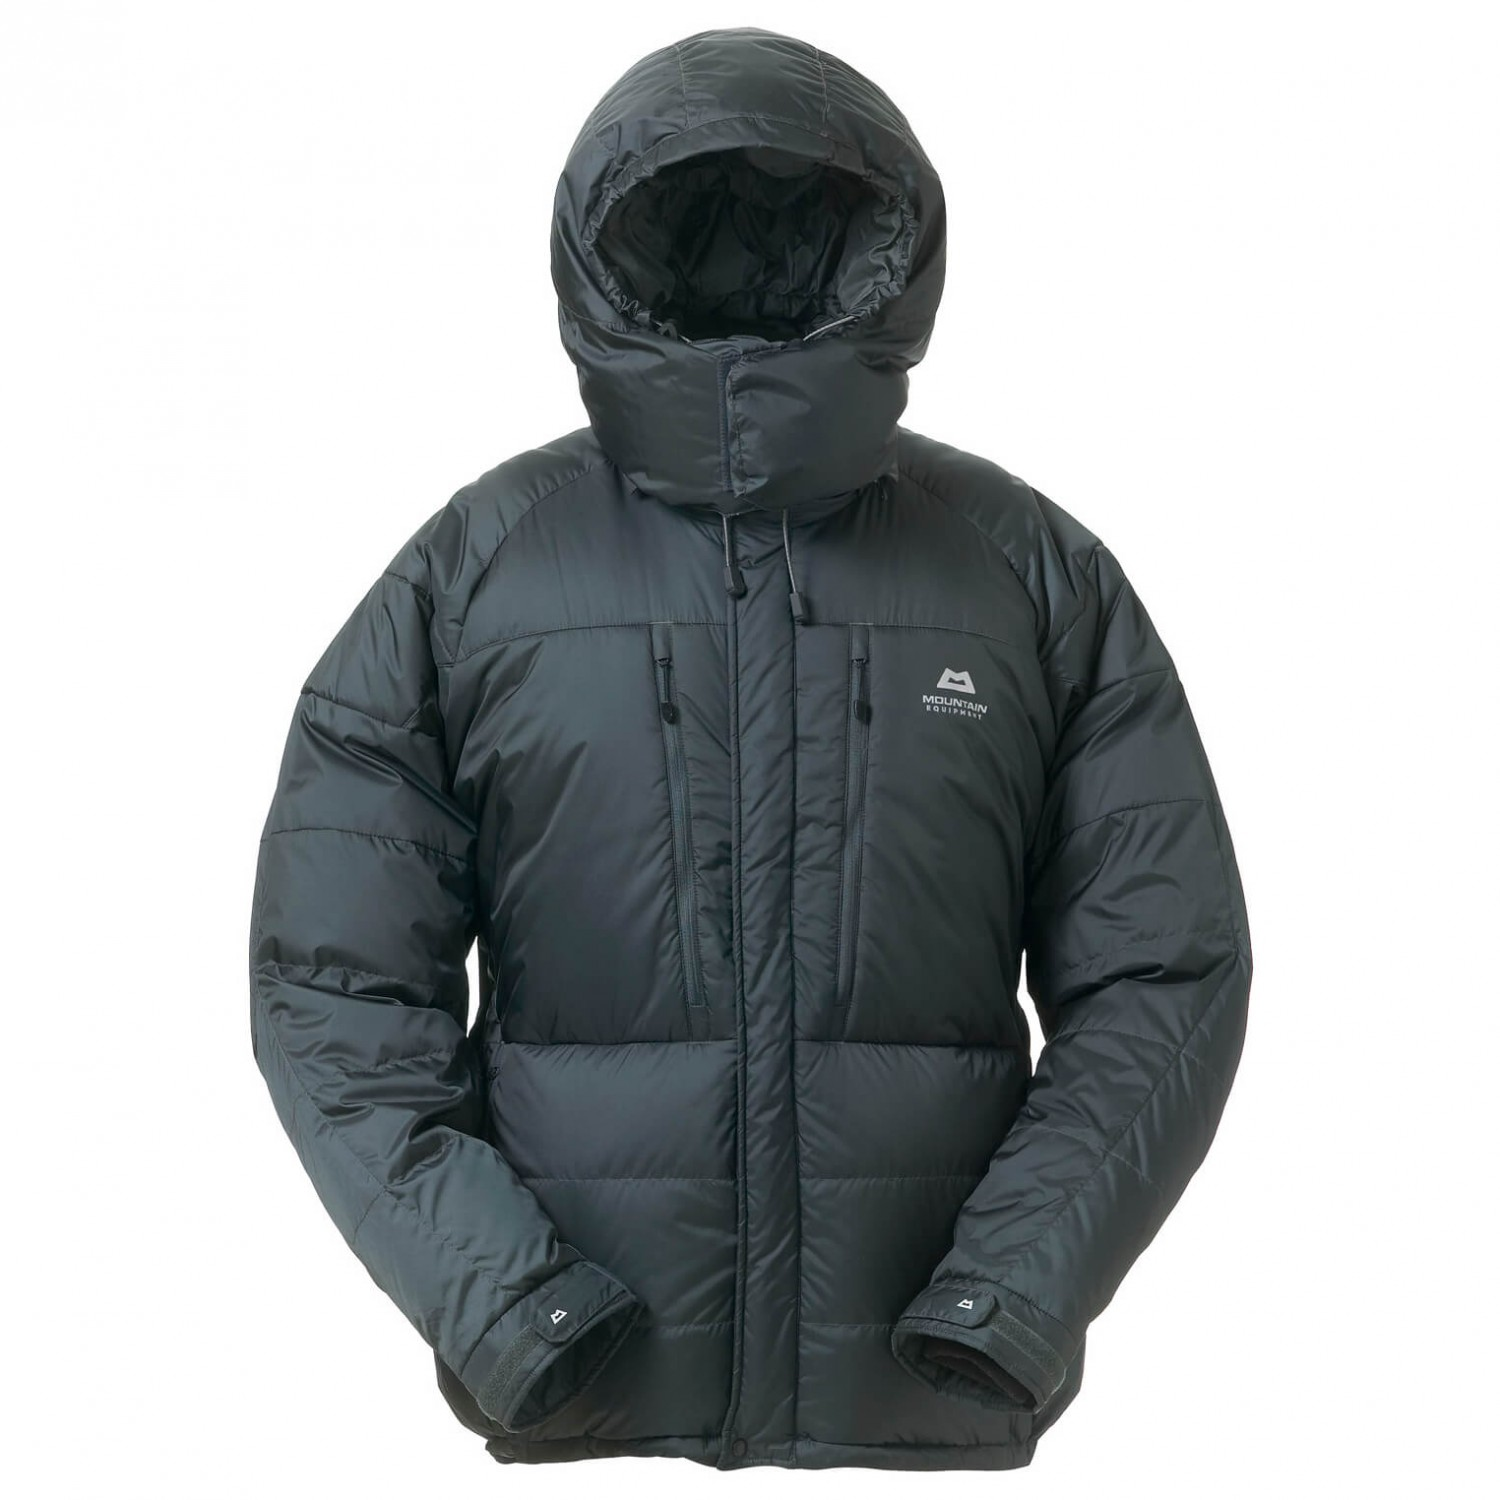 quality design 5cb89 1c592 Mountain Equipment - Annapurna Jacket - Daunenjacke - Black | XS